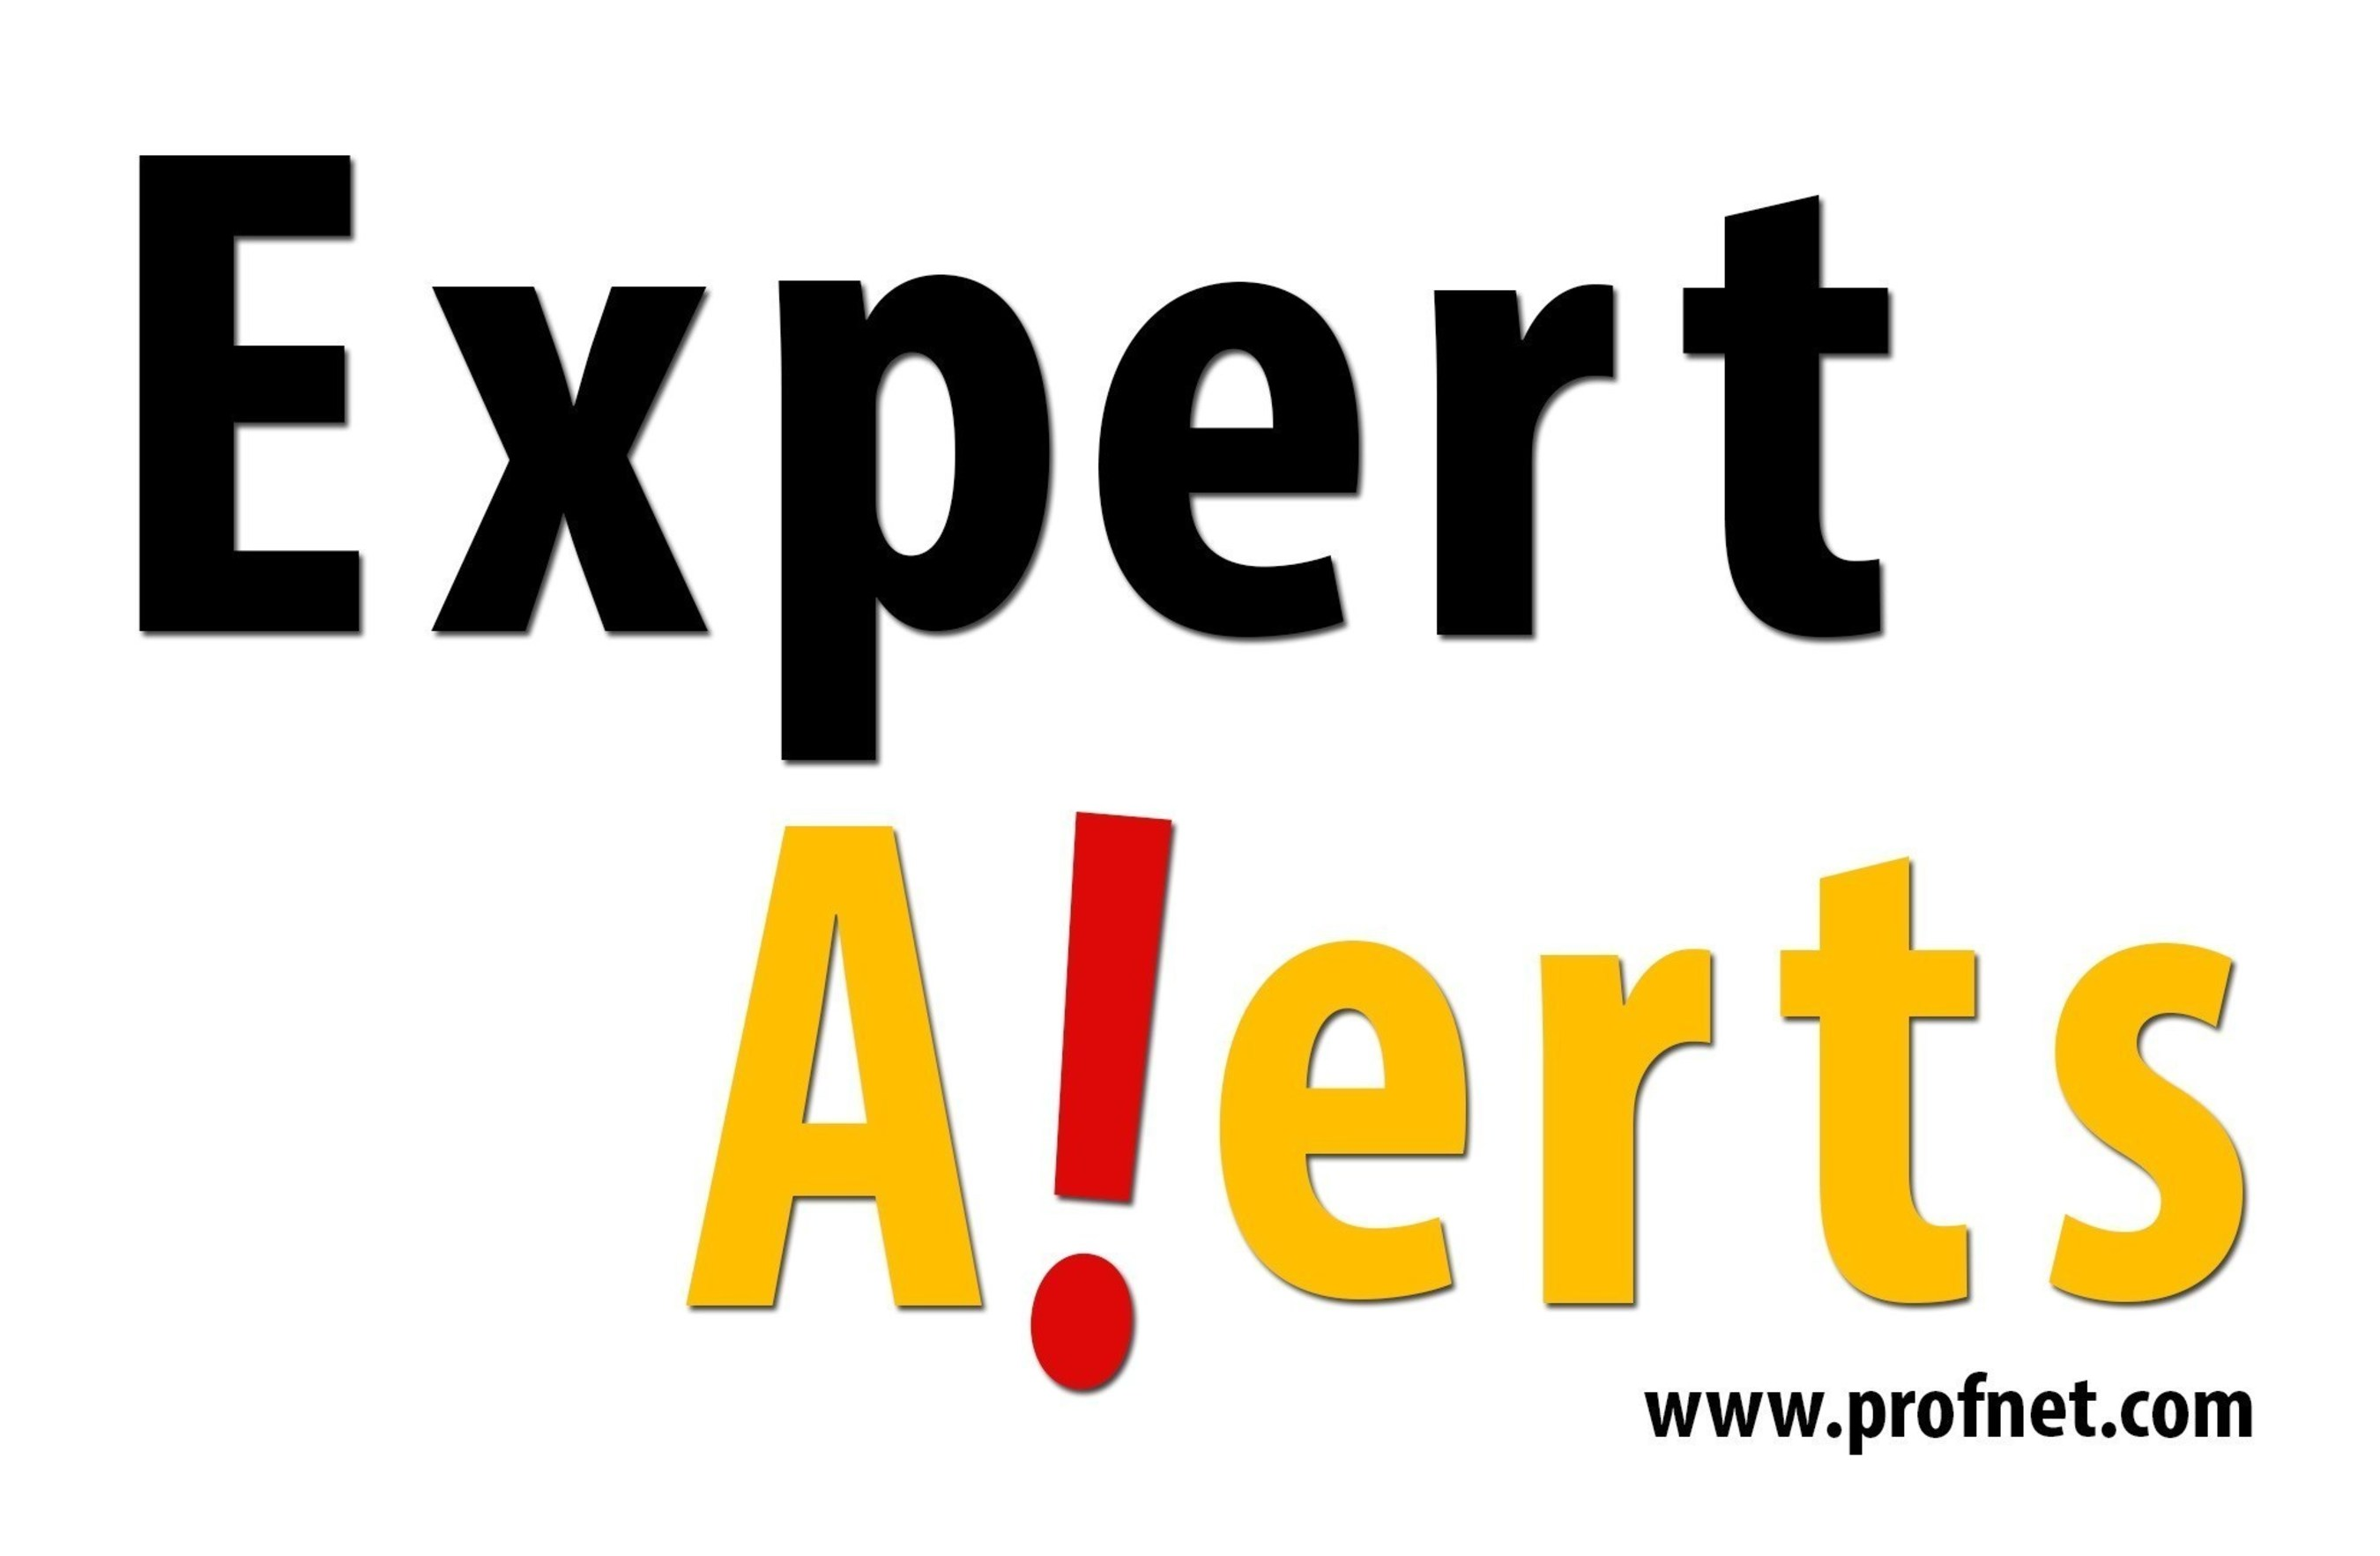 ProfNet is a free service for journalists that helps them connect with expert sources. Learn more at www.profnet.com.